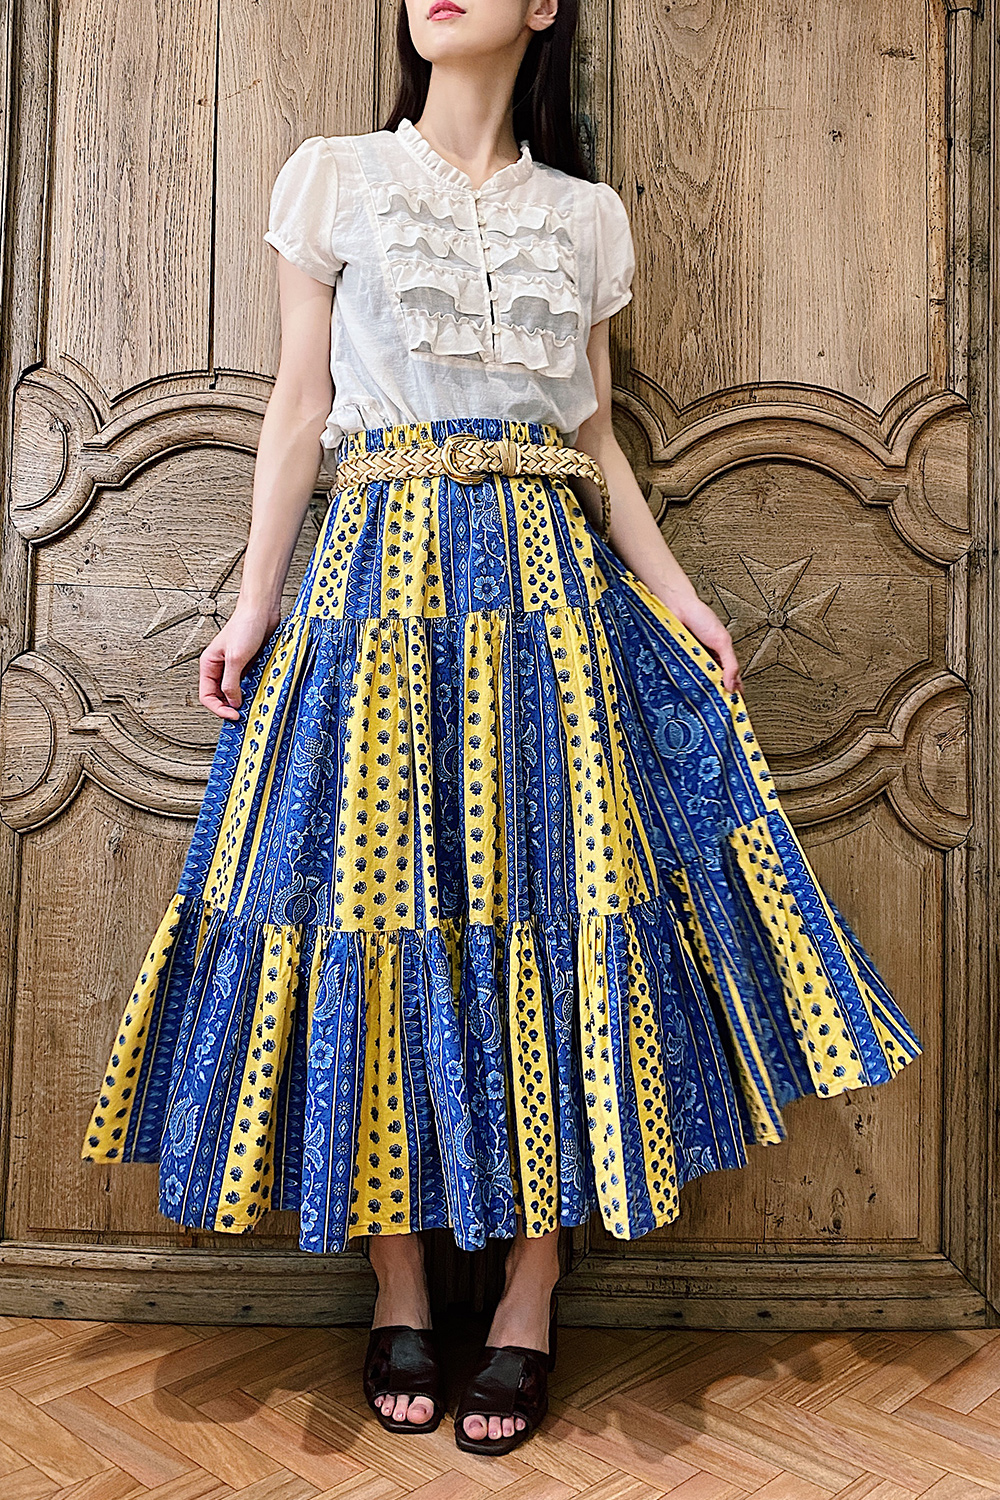 Made in France Provence Skirt